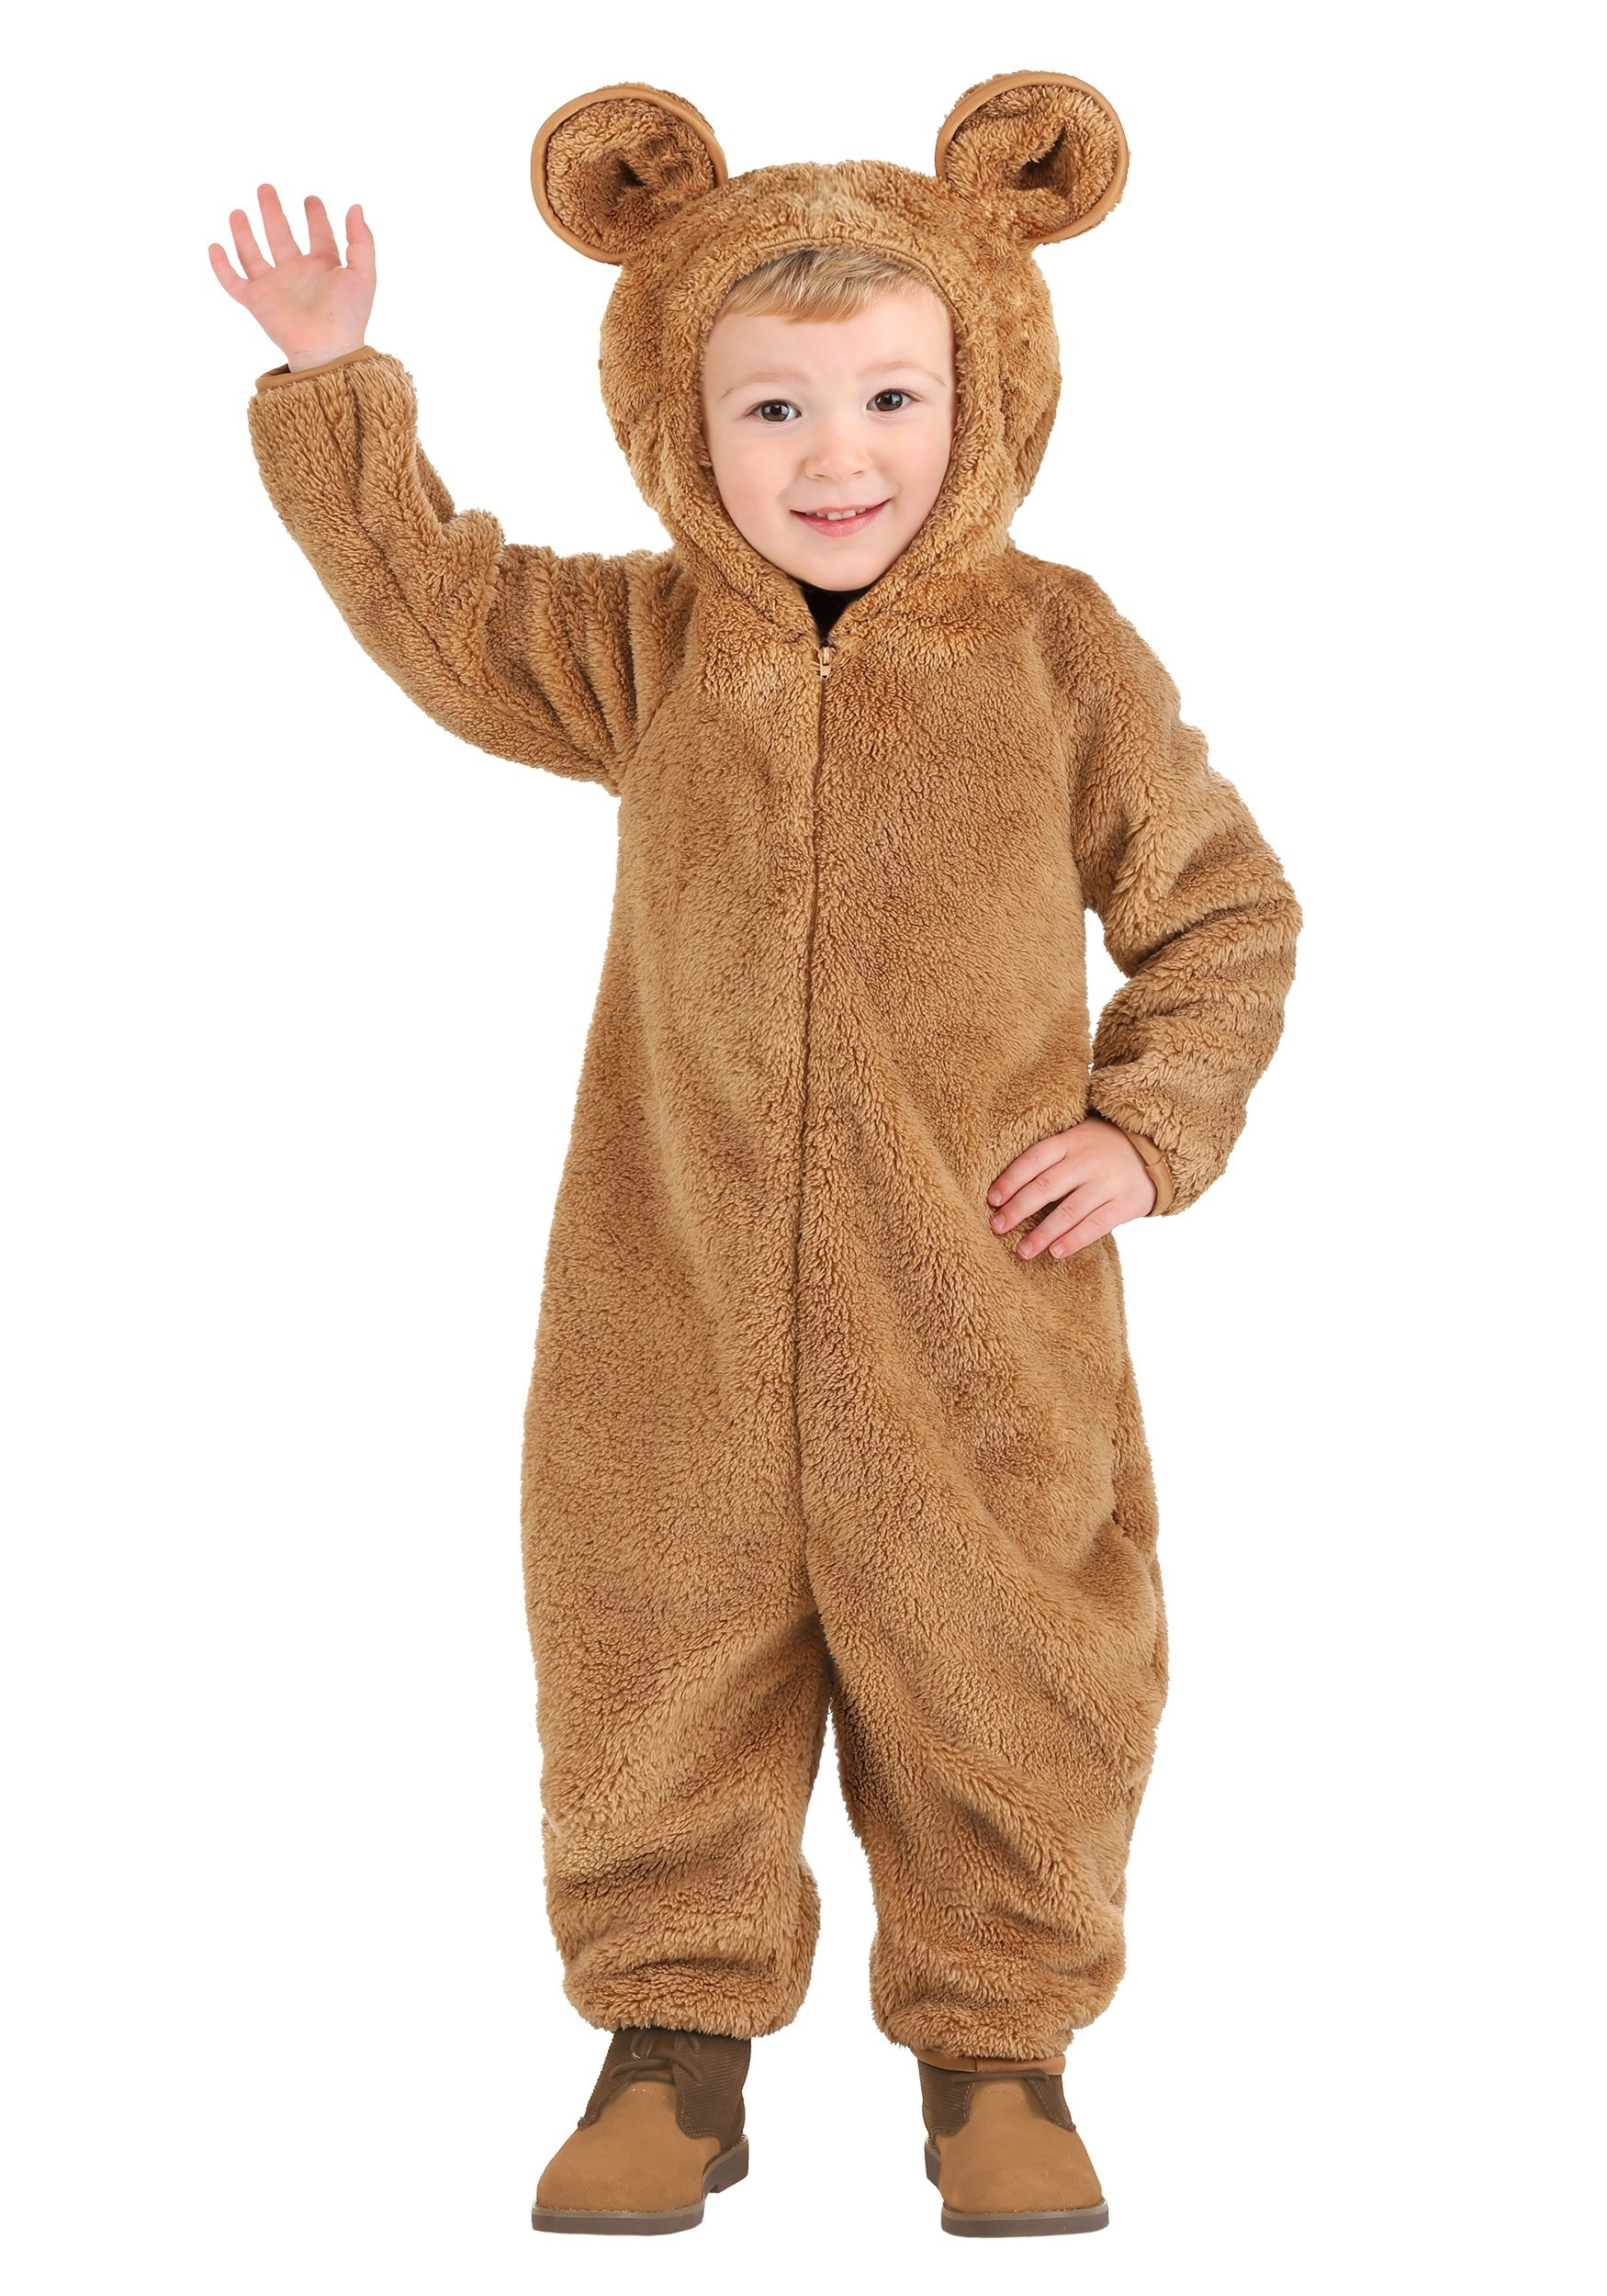 Little Teddy Costume for Toddlers